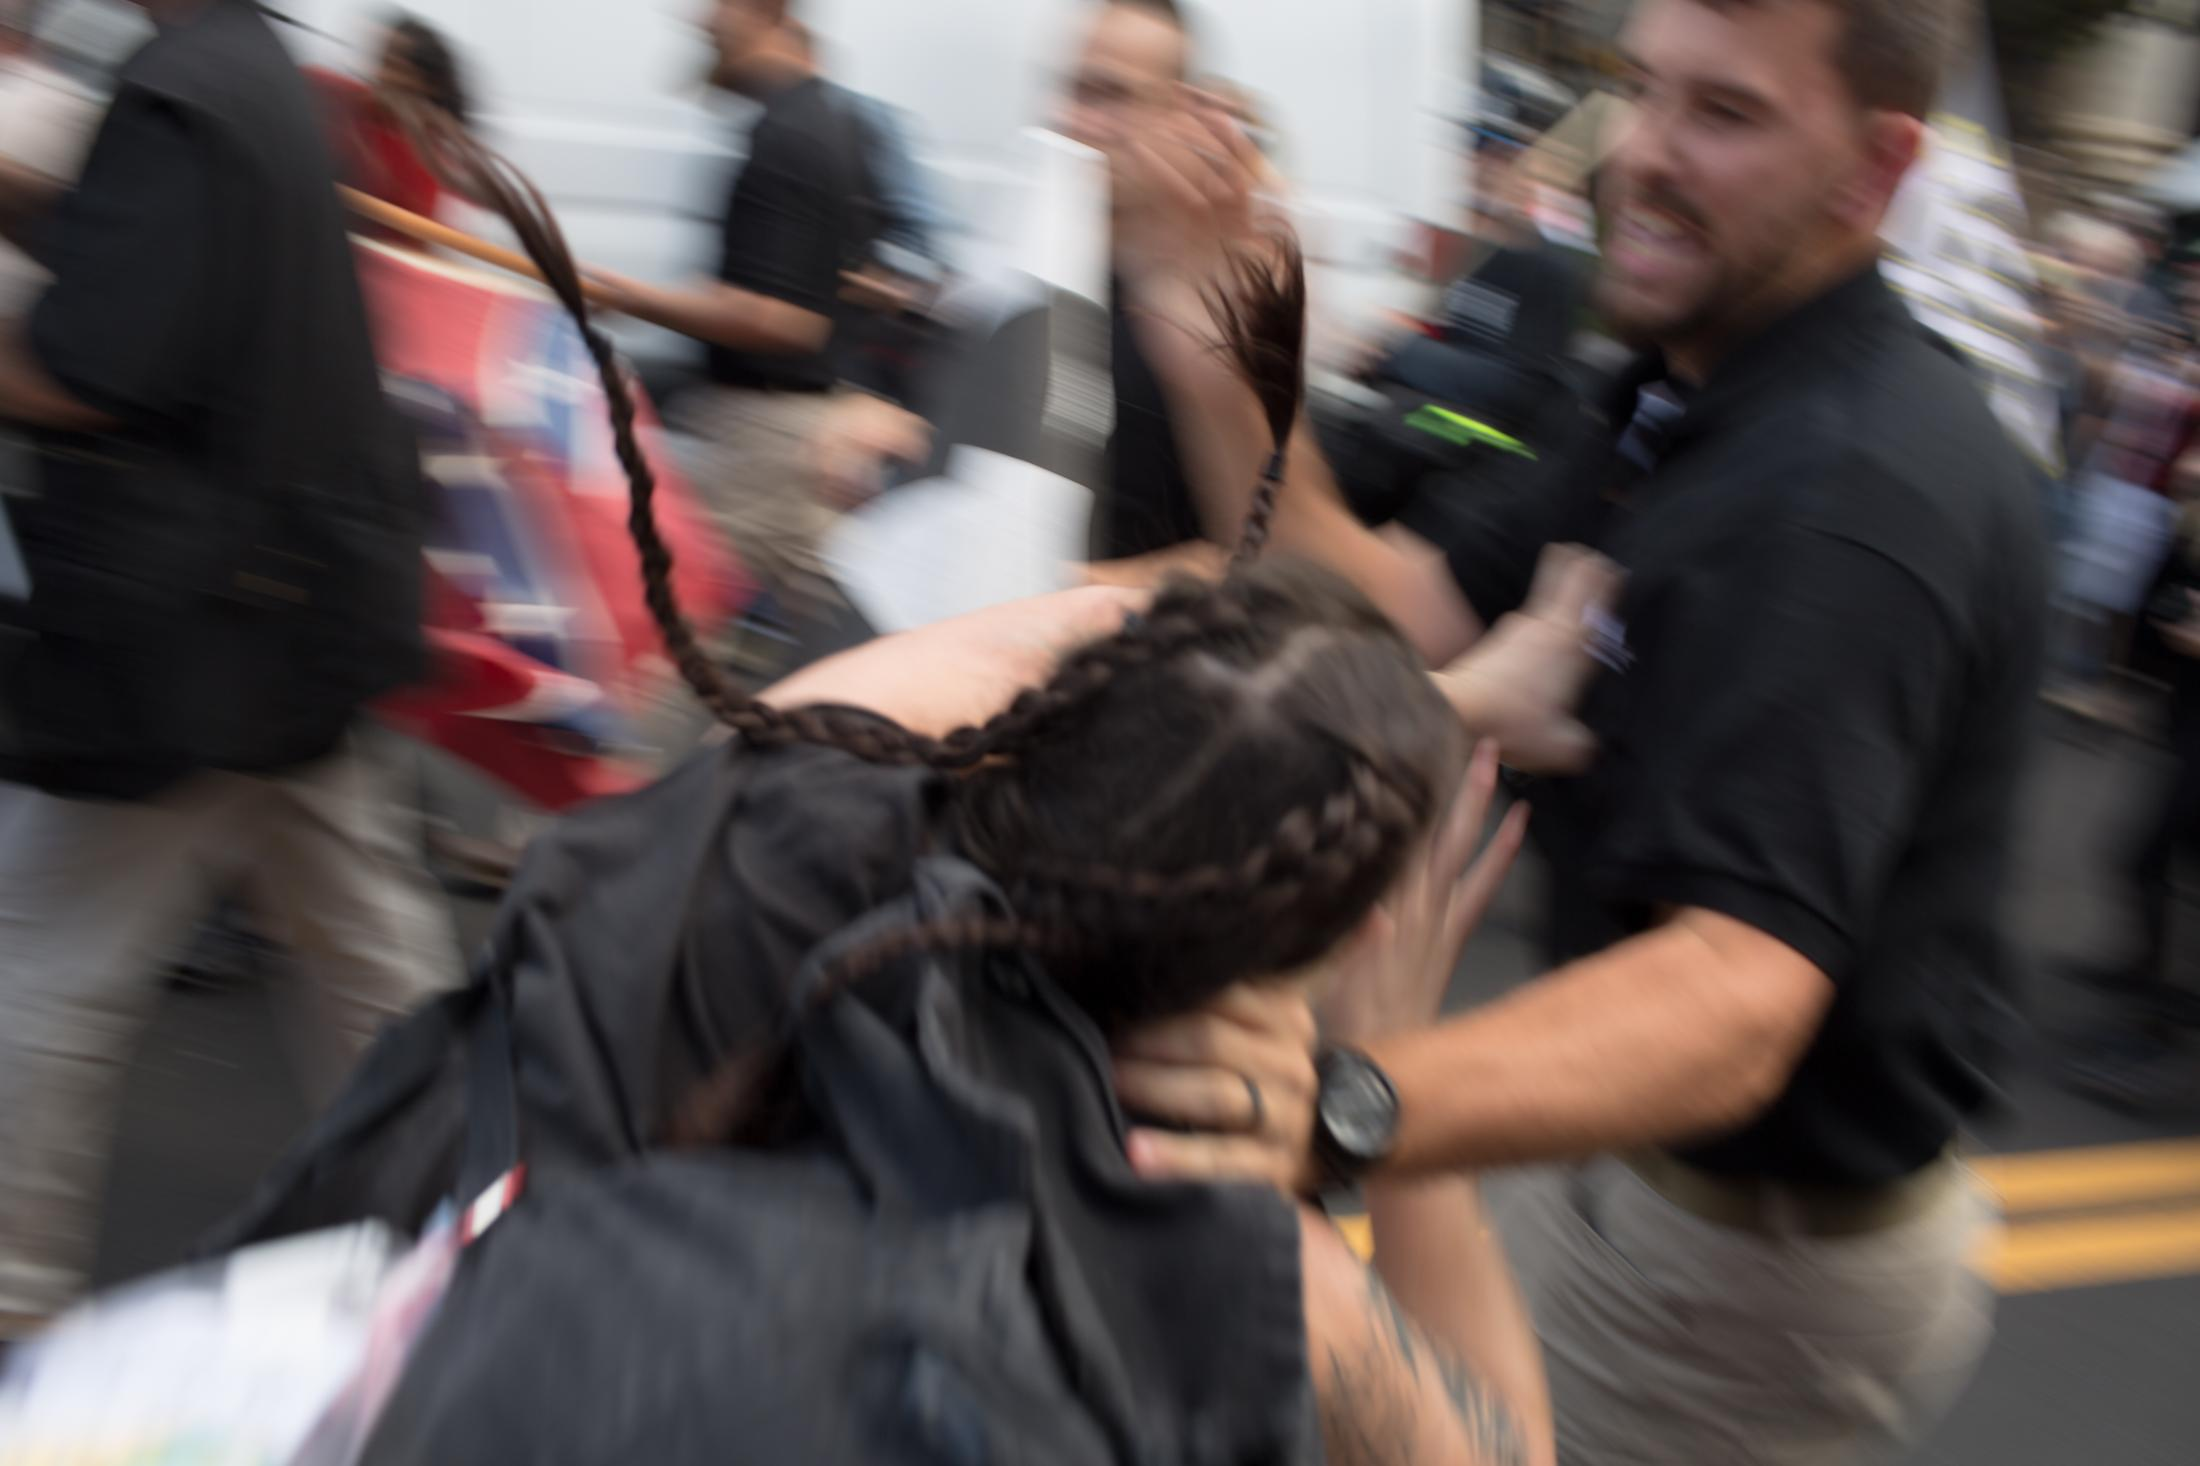 A member of the League of the South and an antifascist protester trade blows during a brawl that broke out after a group of white supremacists were blocked from entering Emancipation Park for the Unite the Right rally in Charlottesville, VA on August 12, 2017.